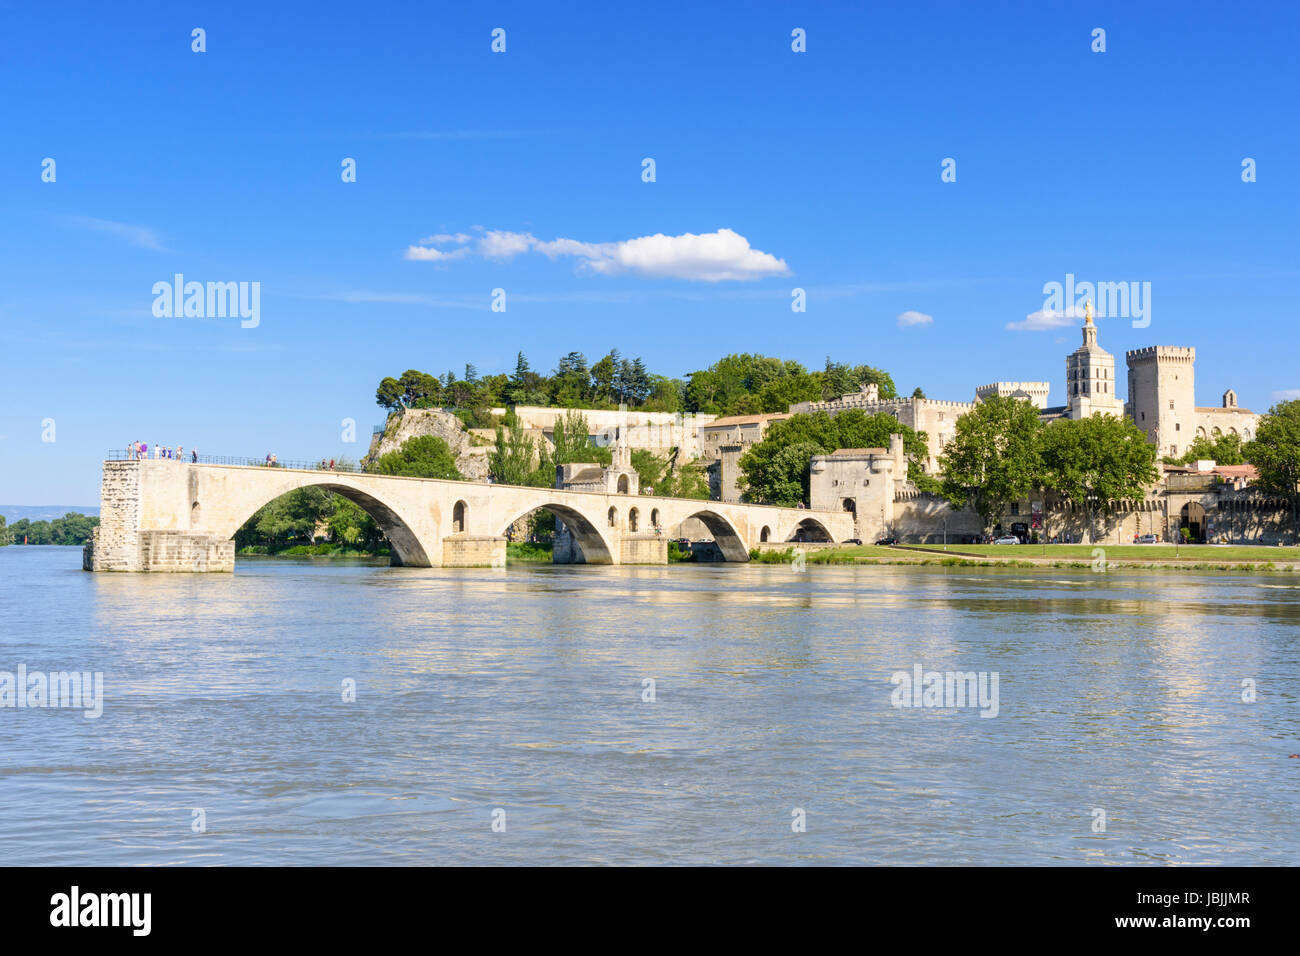 Medieval city views and the four remaining arches of Avignon bridge, the Pont Saint-Bénézet from the Rhone - Stock Image